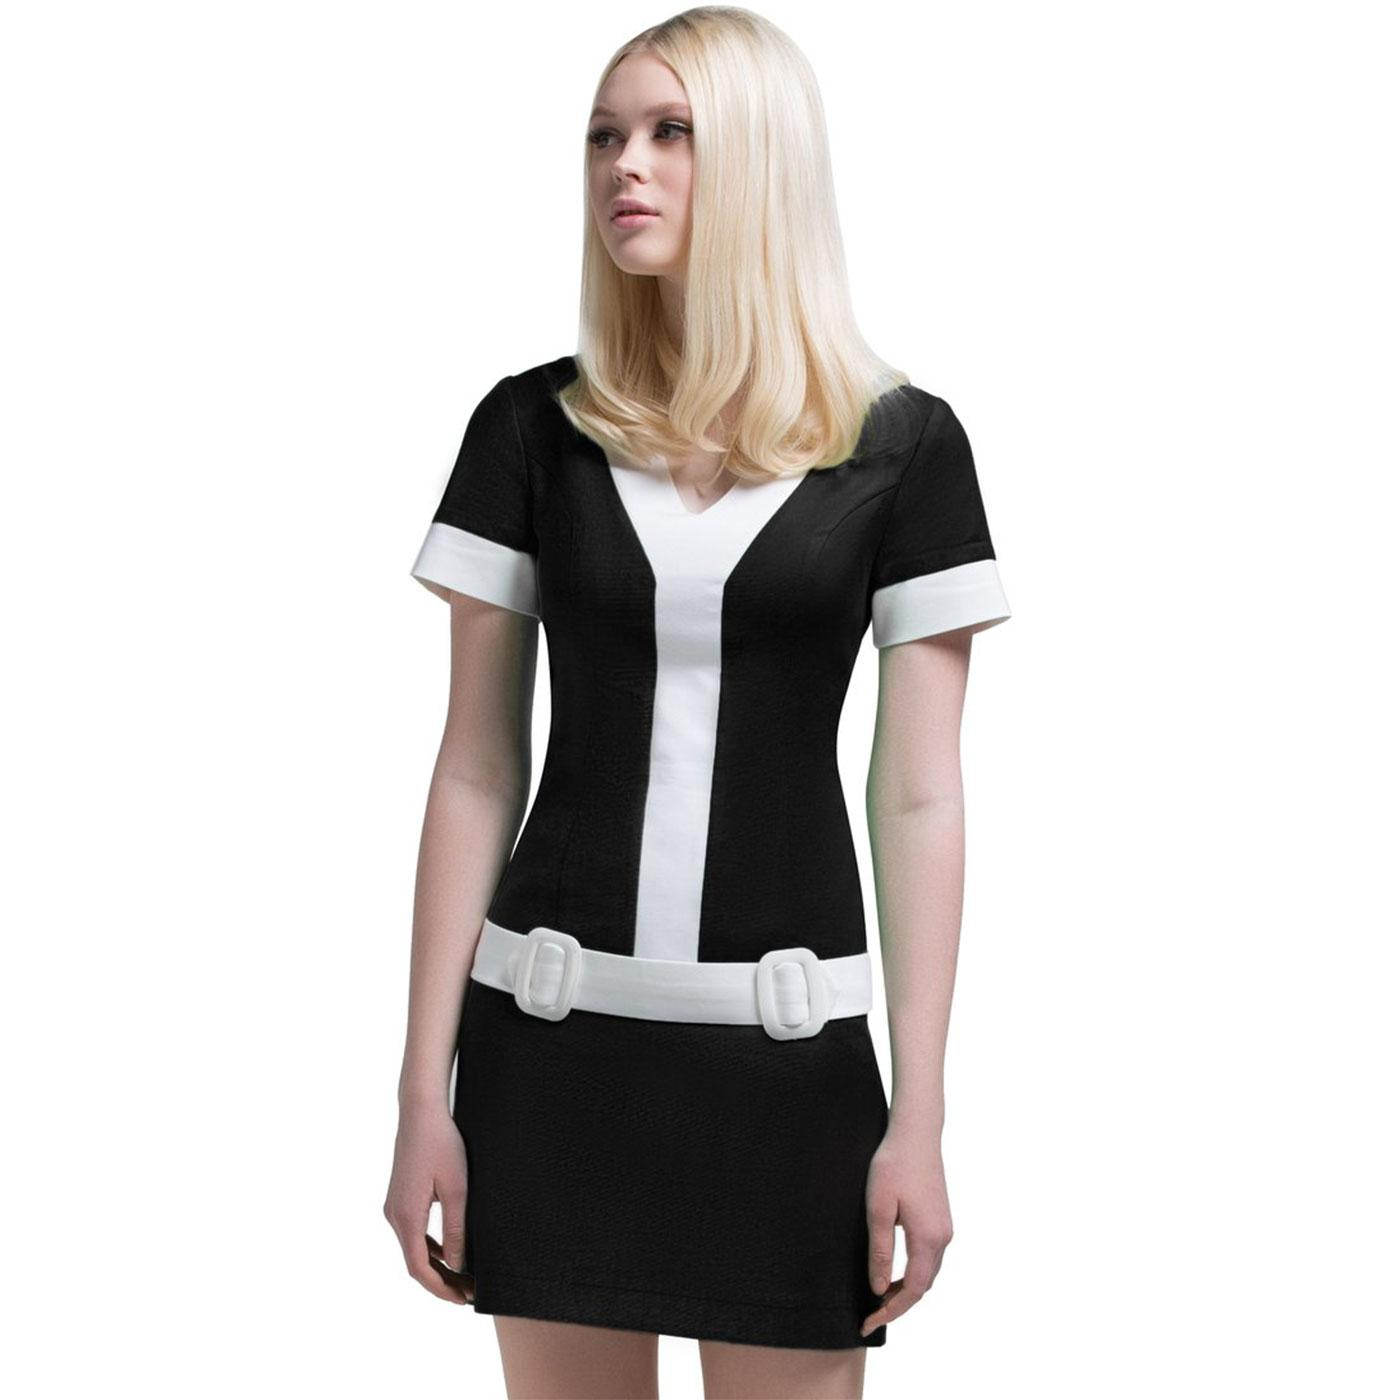 MARMALADE Retro 60s Short Sleeve Mod Dress Black